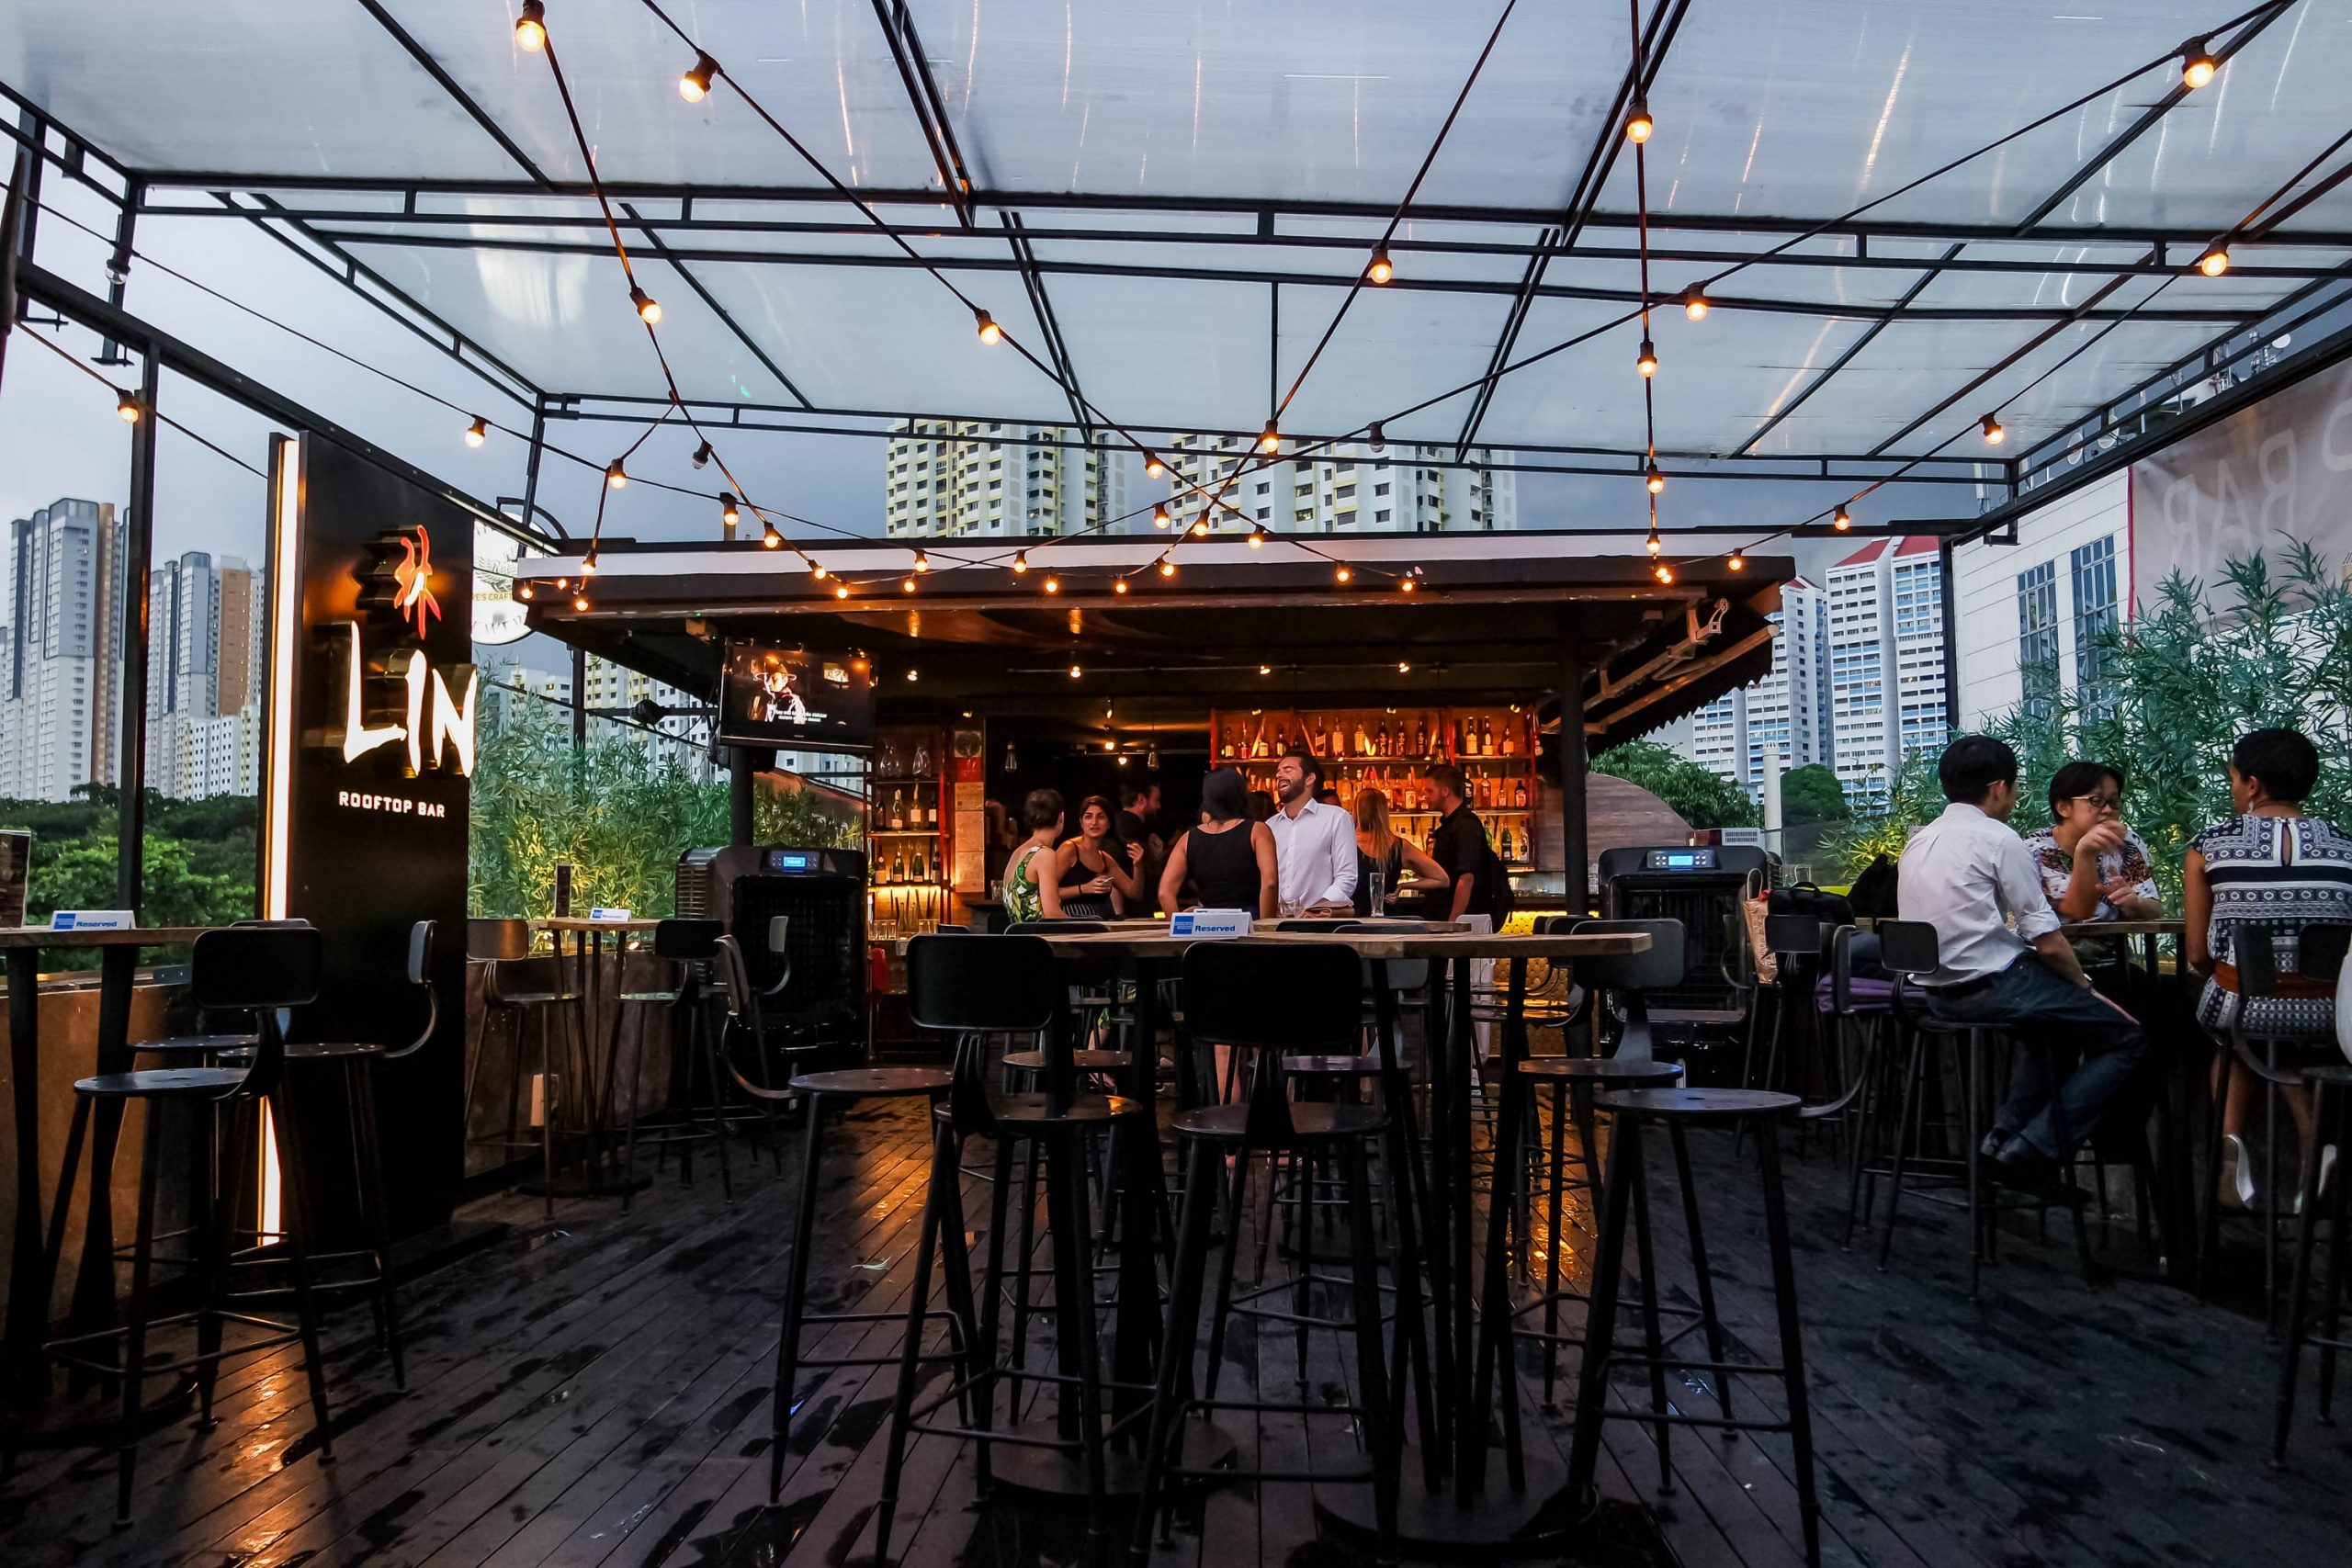 Lin Rooftop Bar at Link Hotel | Darren Bloggie 達人的部落格 - Singapore Lifestyle  Blog